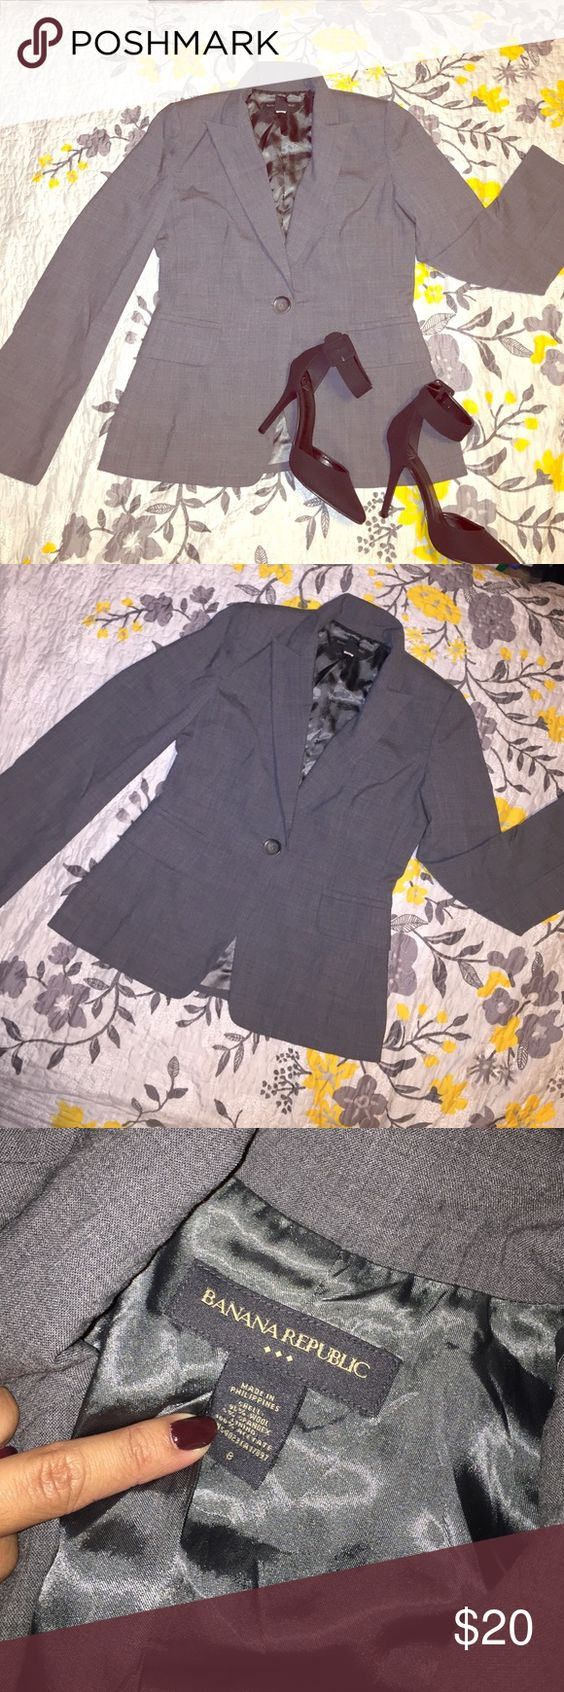 ⚜Banana Republic Gray Coat⚜ Everyone needs a gray blazer ... Wear it with a white tee & some boyfriend jeans for day or wear it over a black dress for night ! Gray blazer from banana republic shell made of 95% wool and 5% spandex ( giving that stretchy feel and look. Pic four shows the material of the aging therefore signs of wear but Overall no stains or rips ! Banana Republic Jackets & Coats Blazers